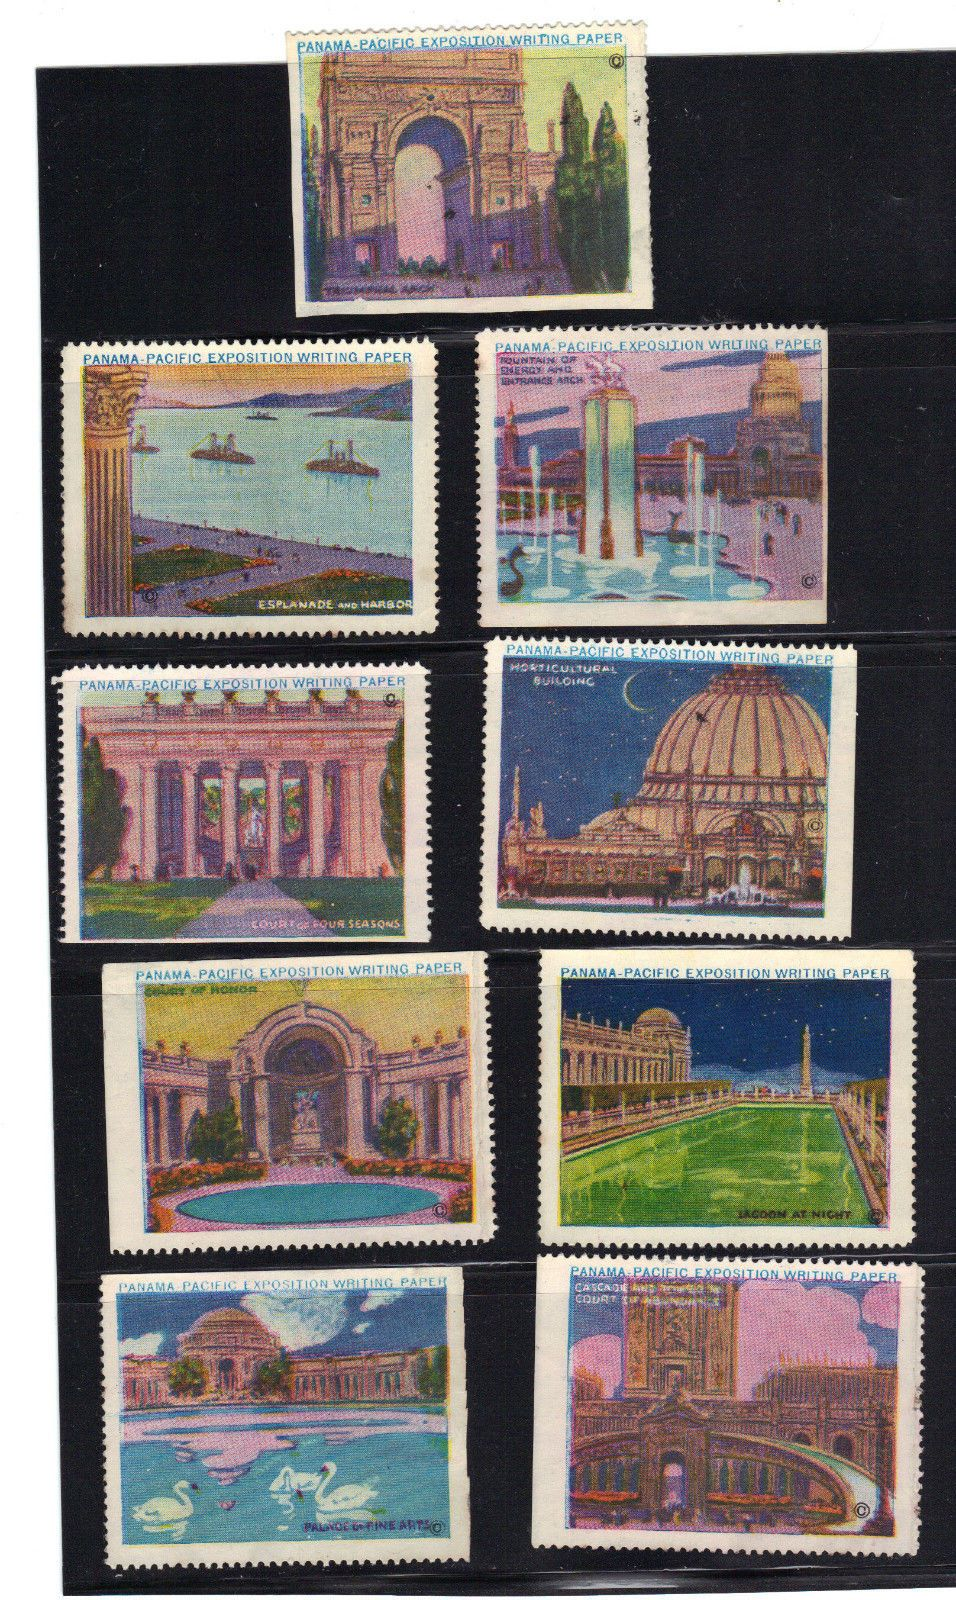 STAMP SAN FRANCISCO 1915 PANAMA-PACIFIC EXPOSITION PALACE OF THE ARTS CA